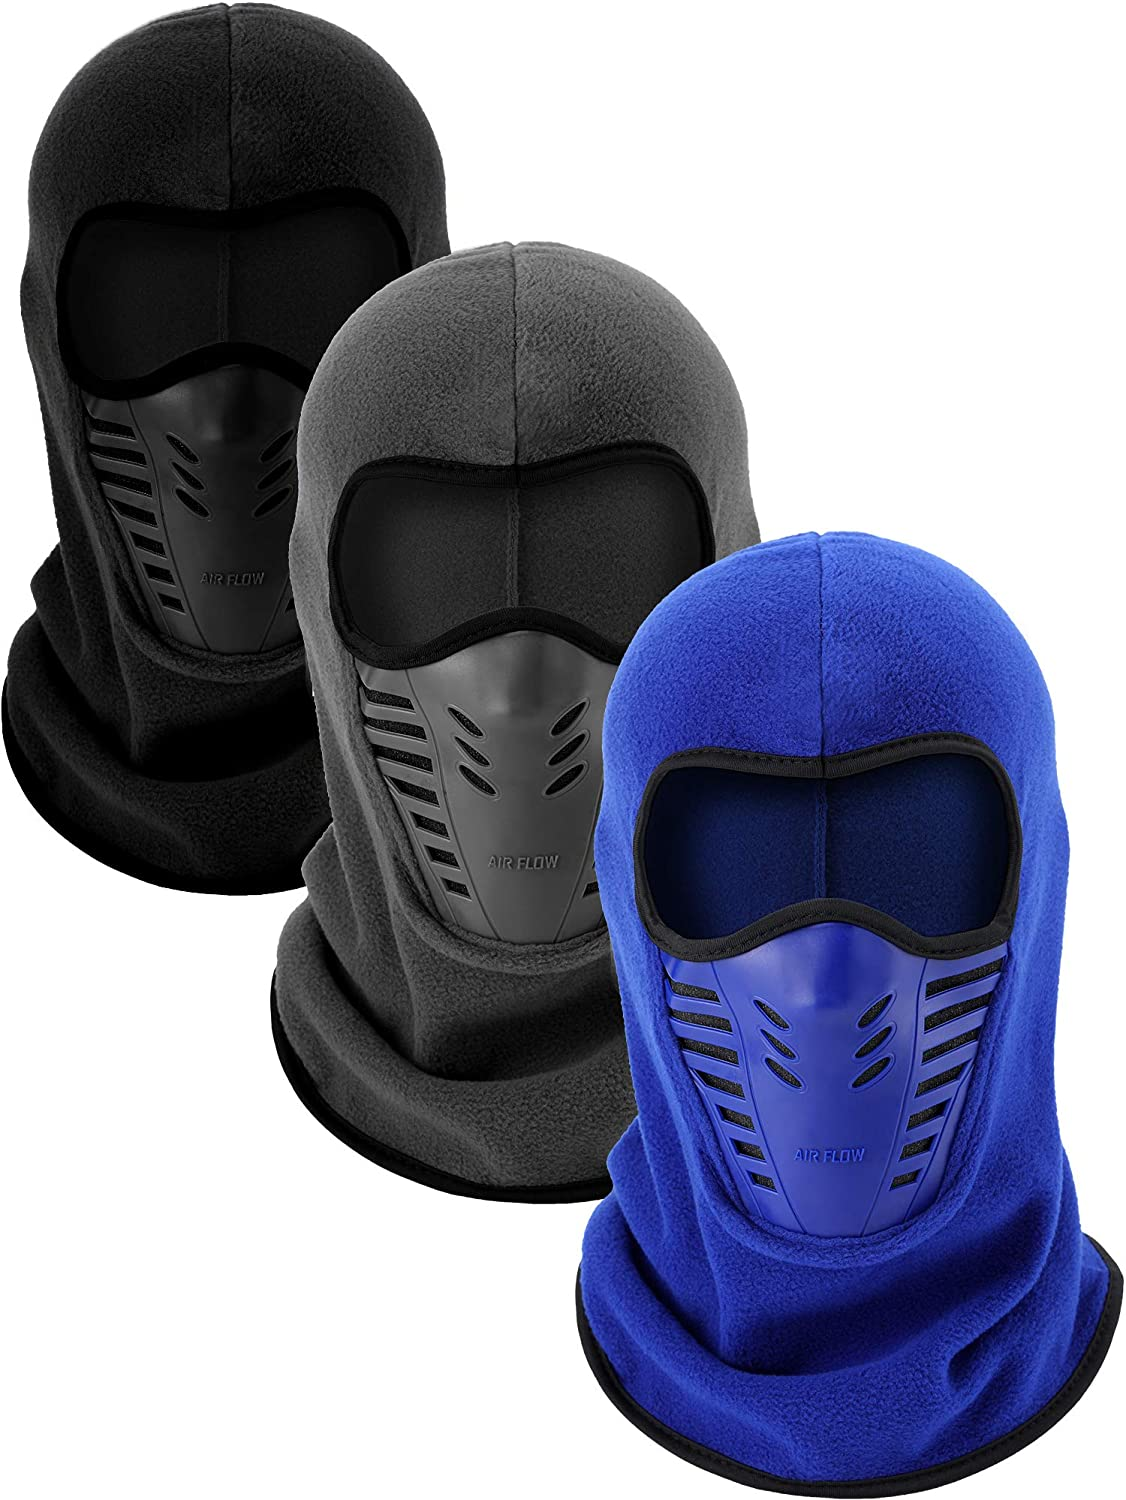 3 Pieces Balaclava Full Face Mask Ski Long Mask Windproof Sports Headwear for Hunting Fishing Activity Supplies